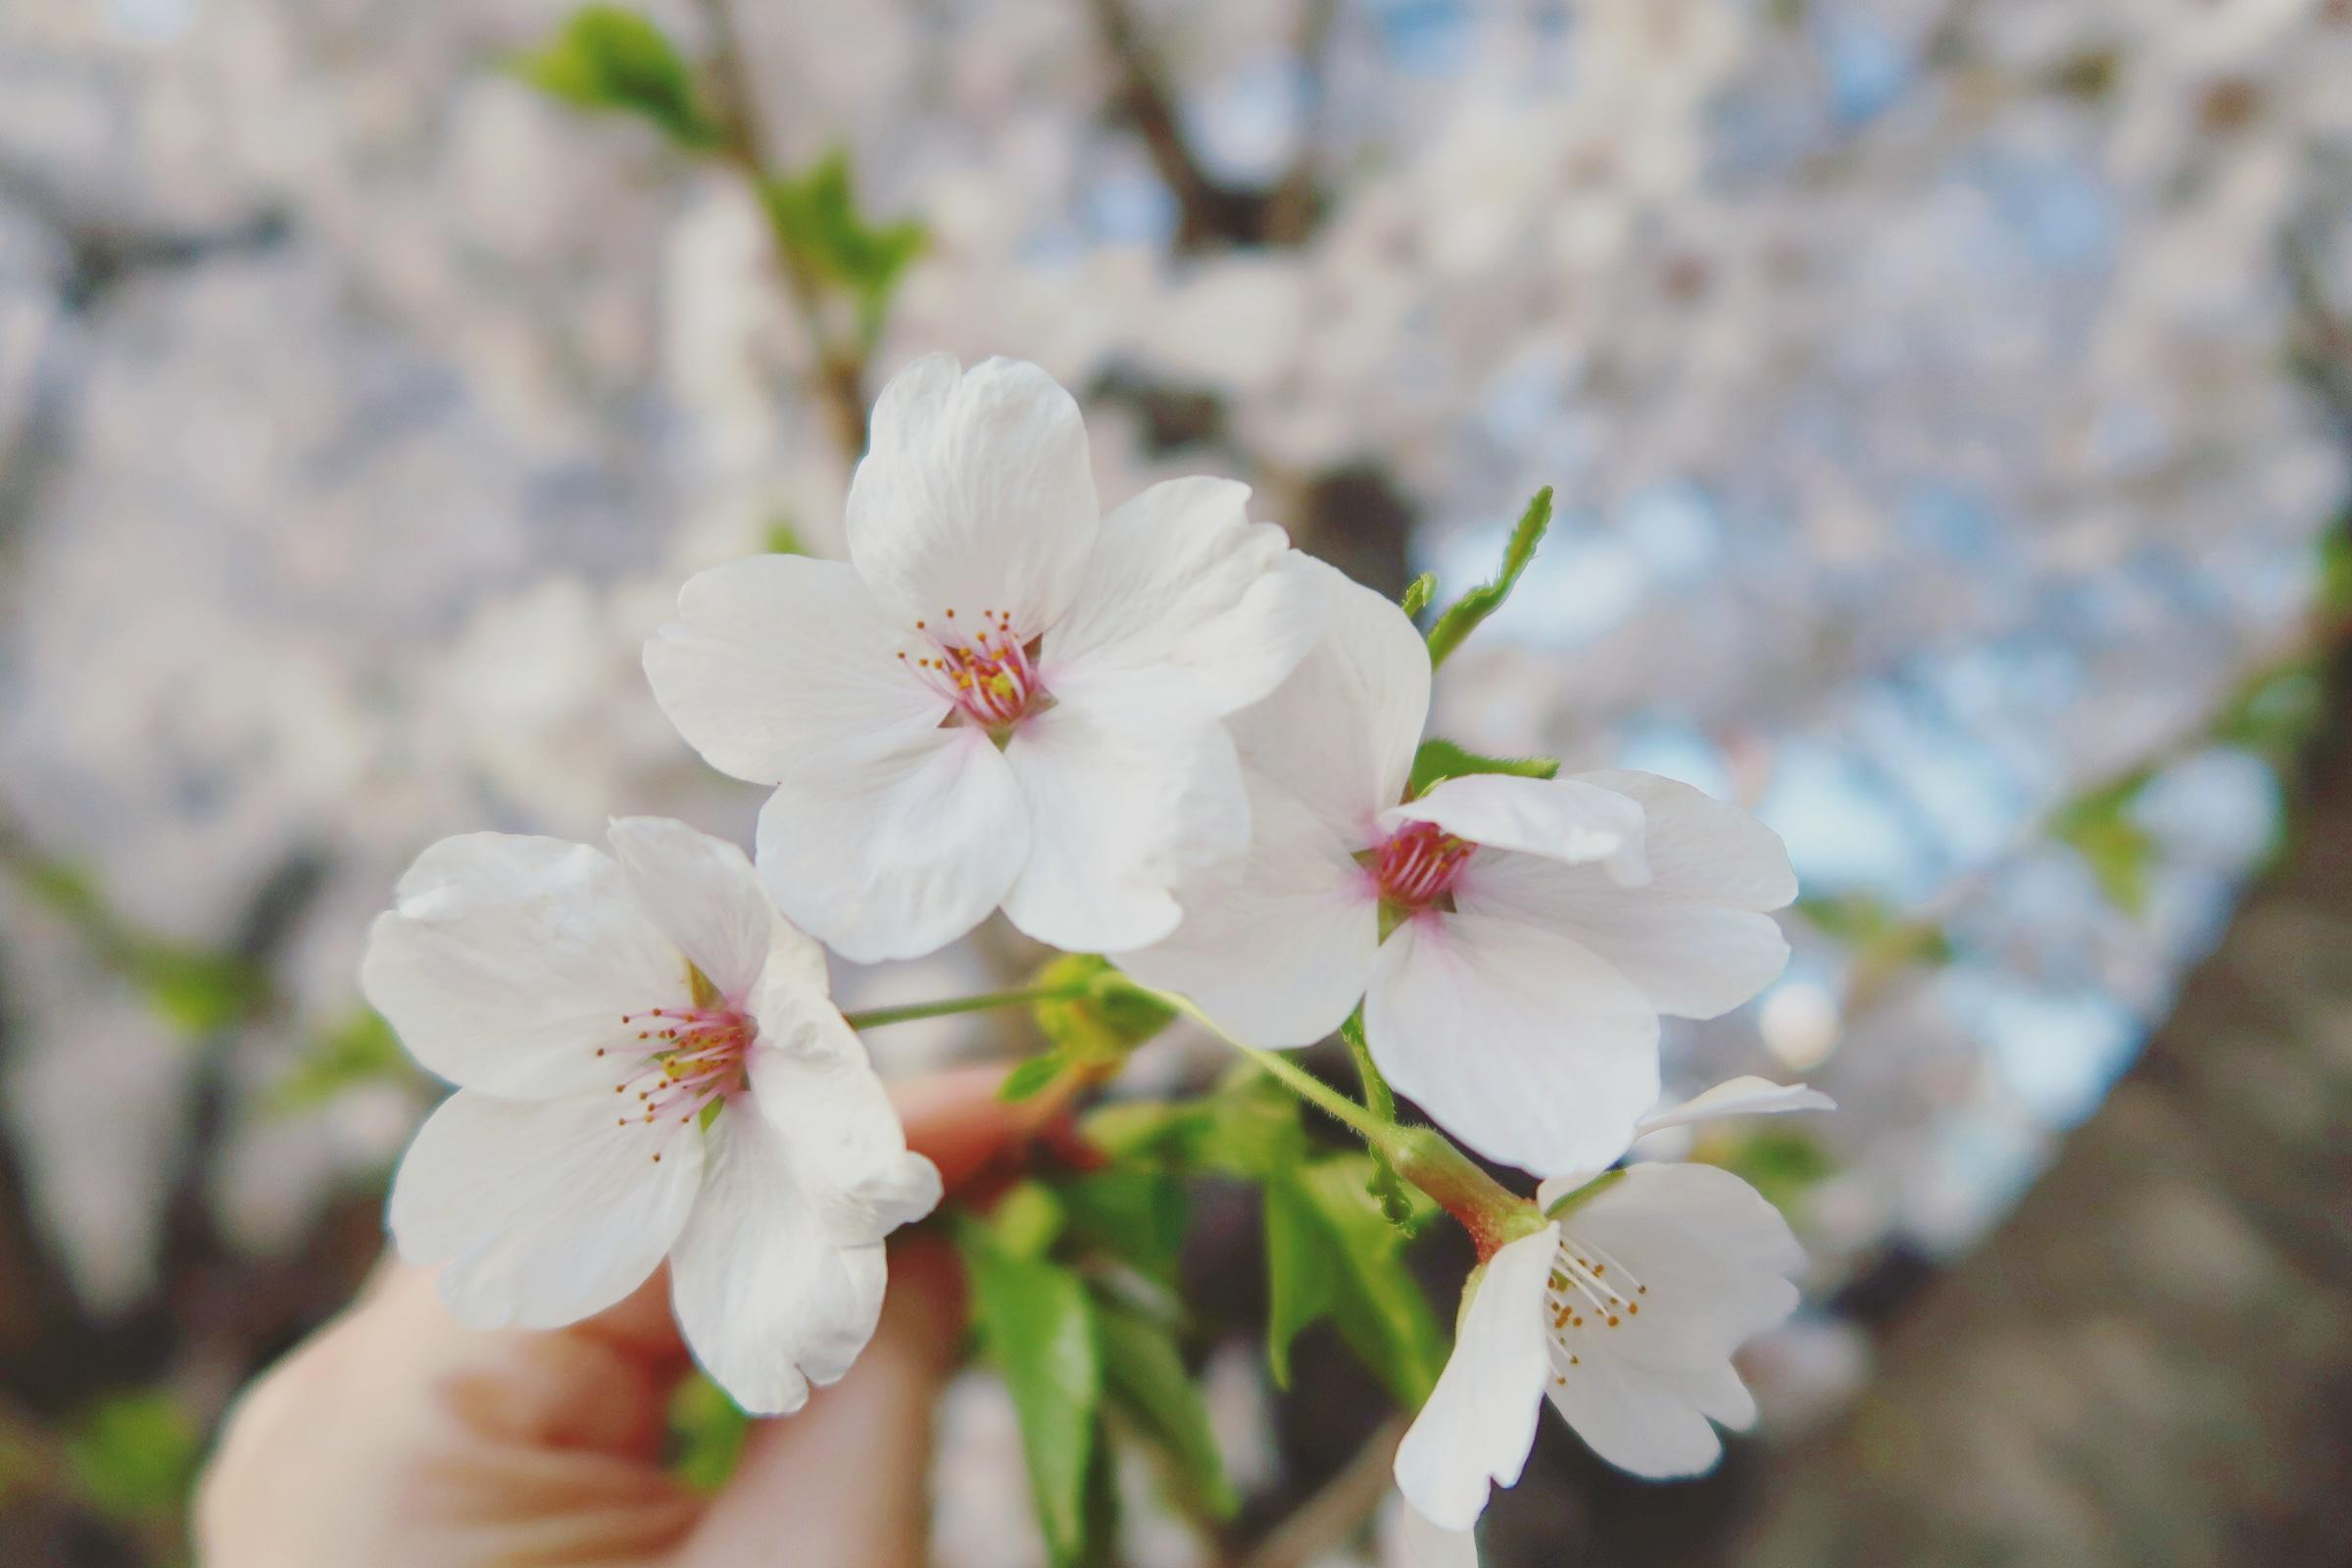 Cherry Blossom Season in Korea – More than just flowers